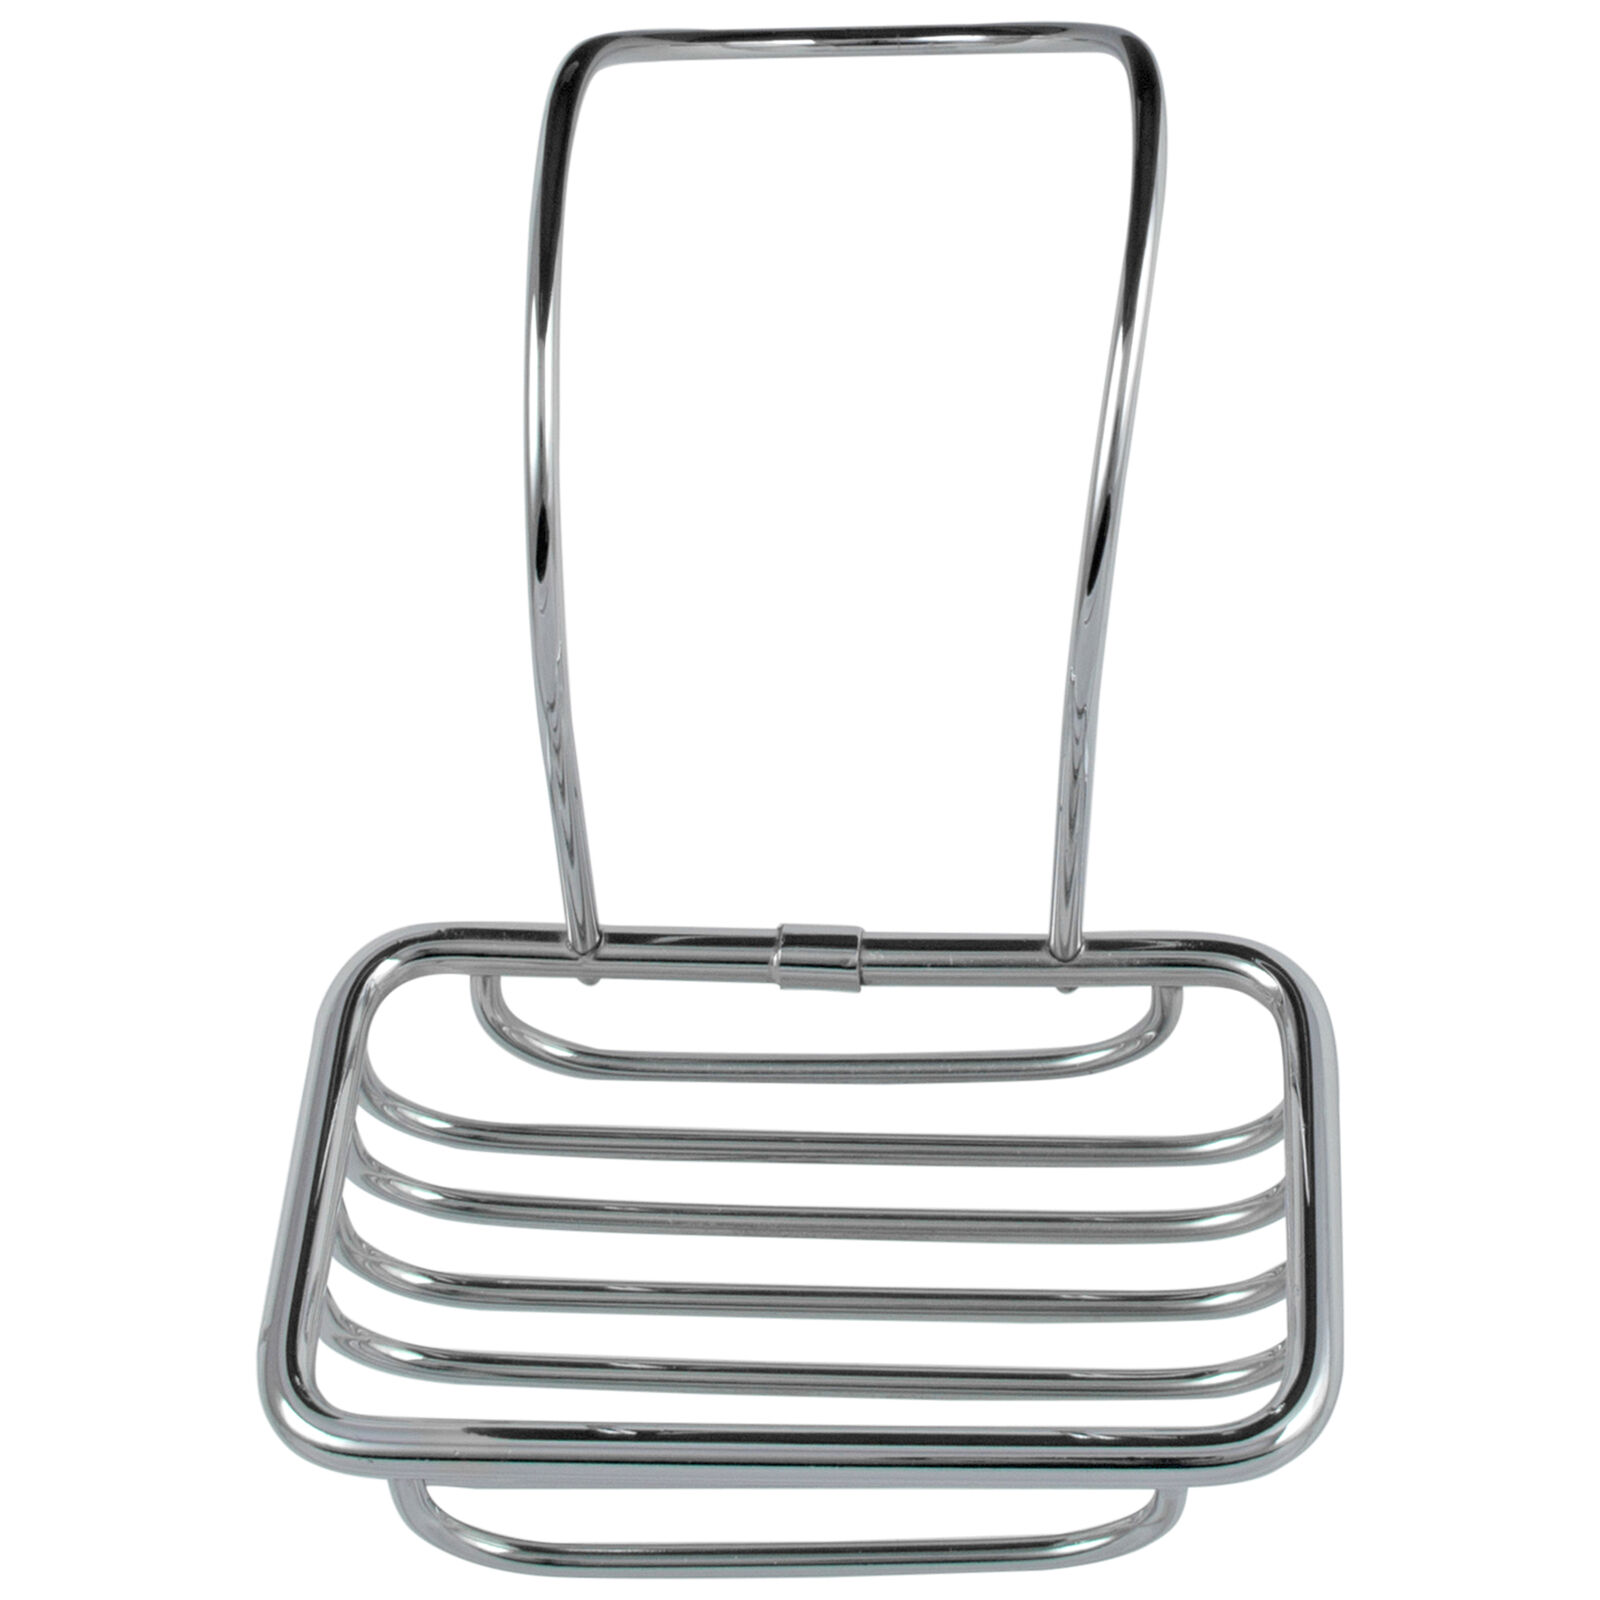 Soap Holder for Over Edge Bath Tub Chrome Plated Claw Foot or Any